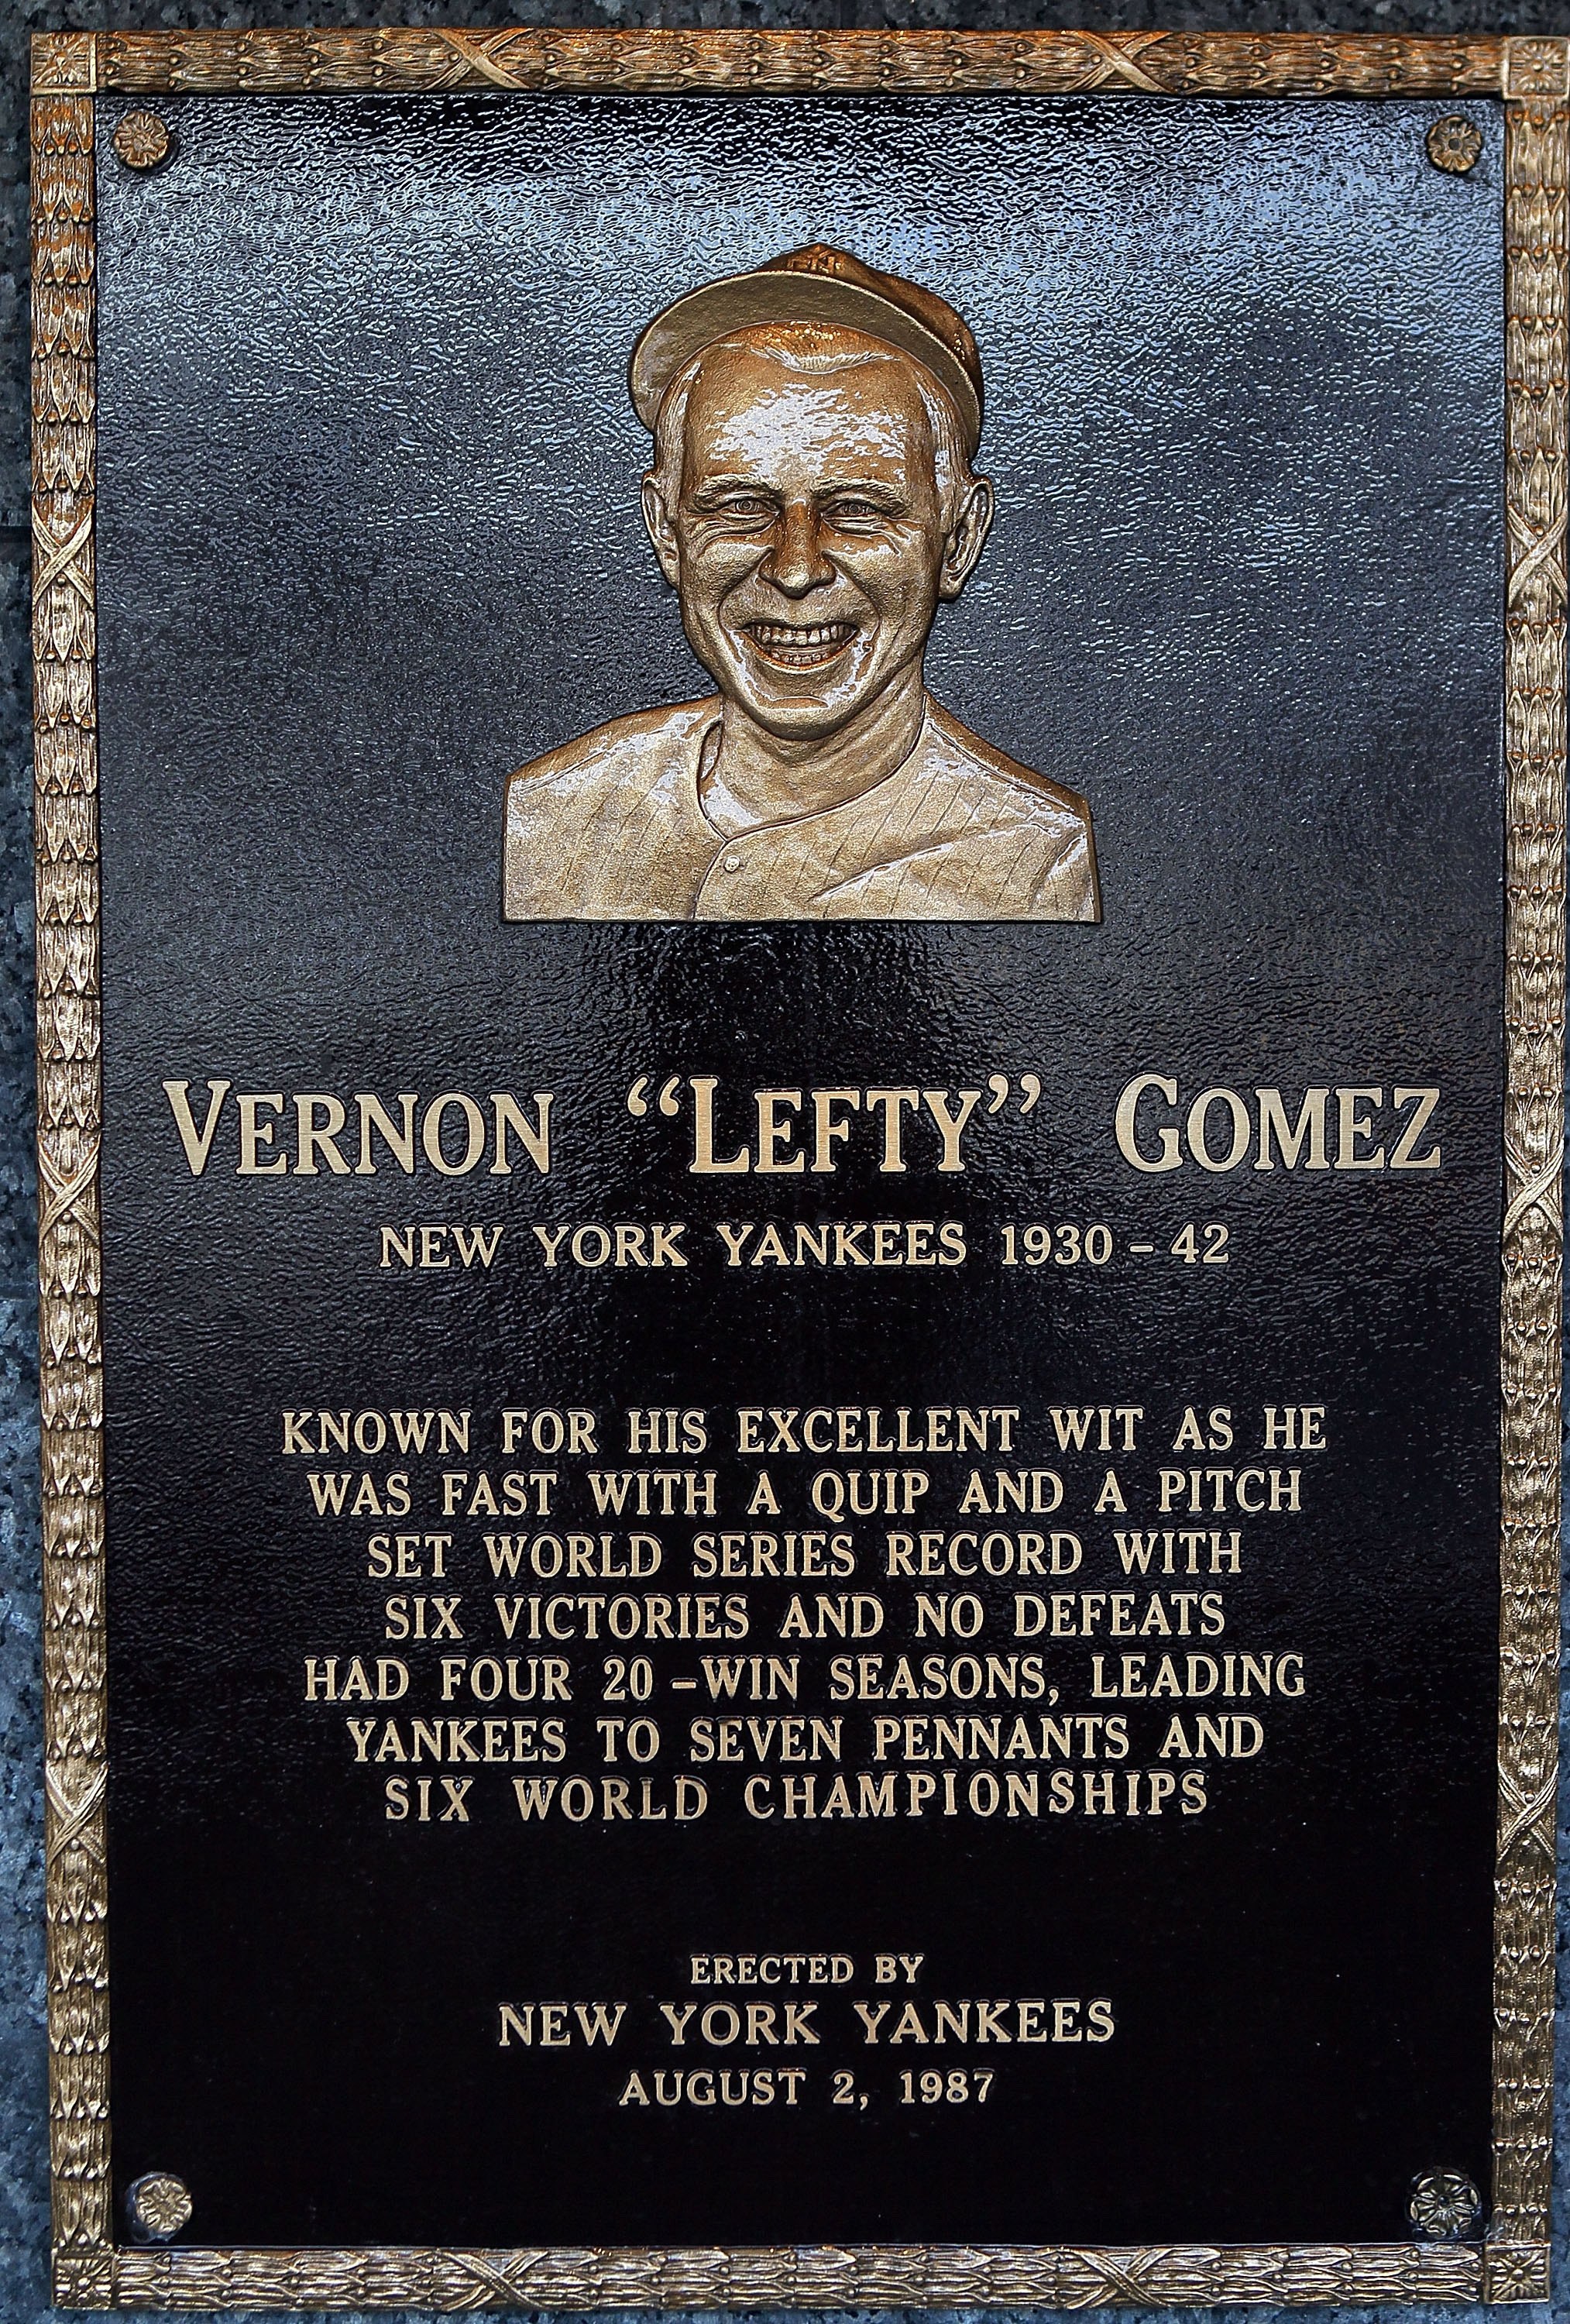 NEW YORK - MAY 02:  The plaque of Lefty Gomez is seen in Monument Park at Yankee Stadium prior to the game between the New York Yankees and the Chicago White Sox on May 2, 2010 in the Bronx borough of New York City. The Yankees defeated the White Sox 12-3